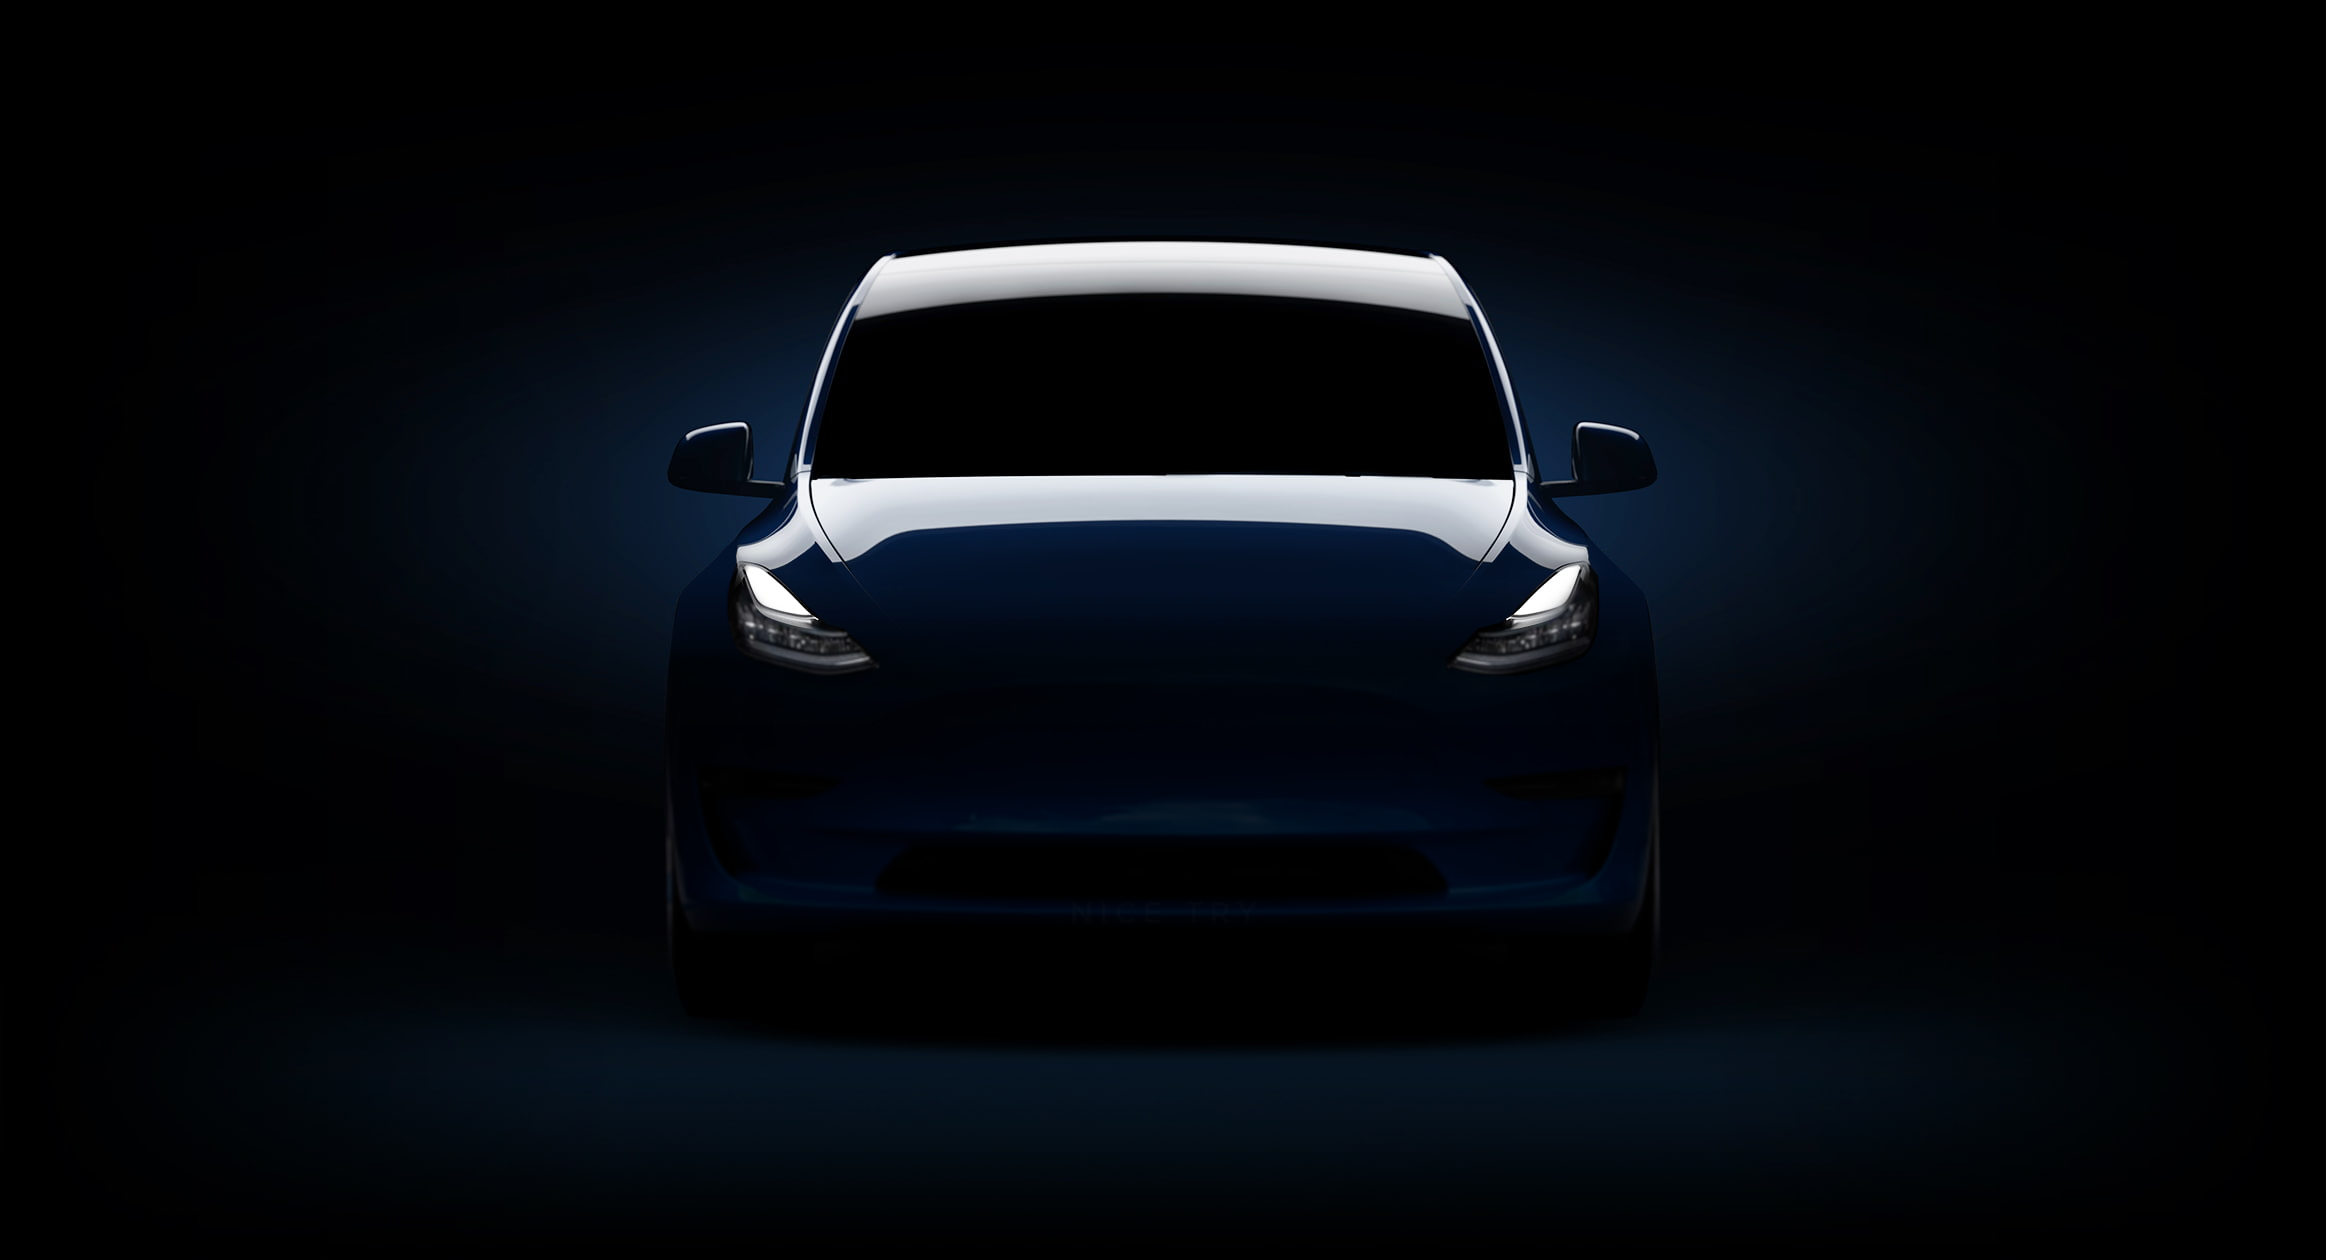 Tesla Model Y teaser image filled by enthusiast, nice try!